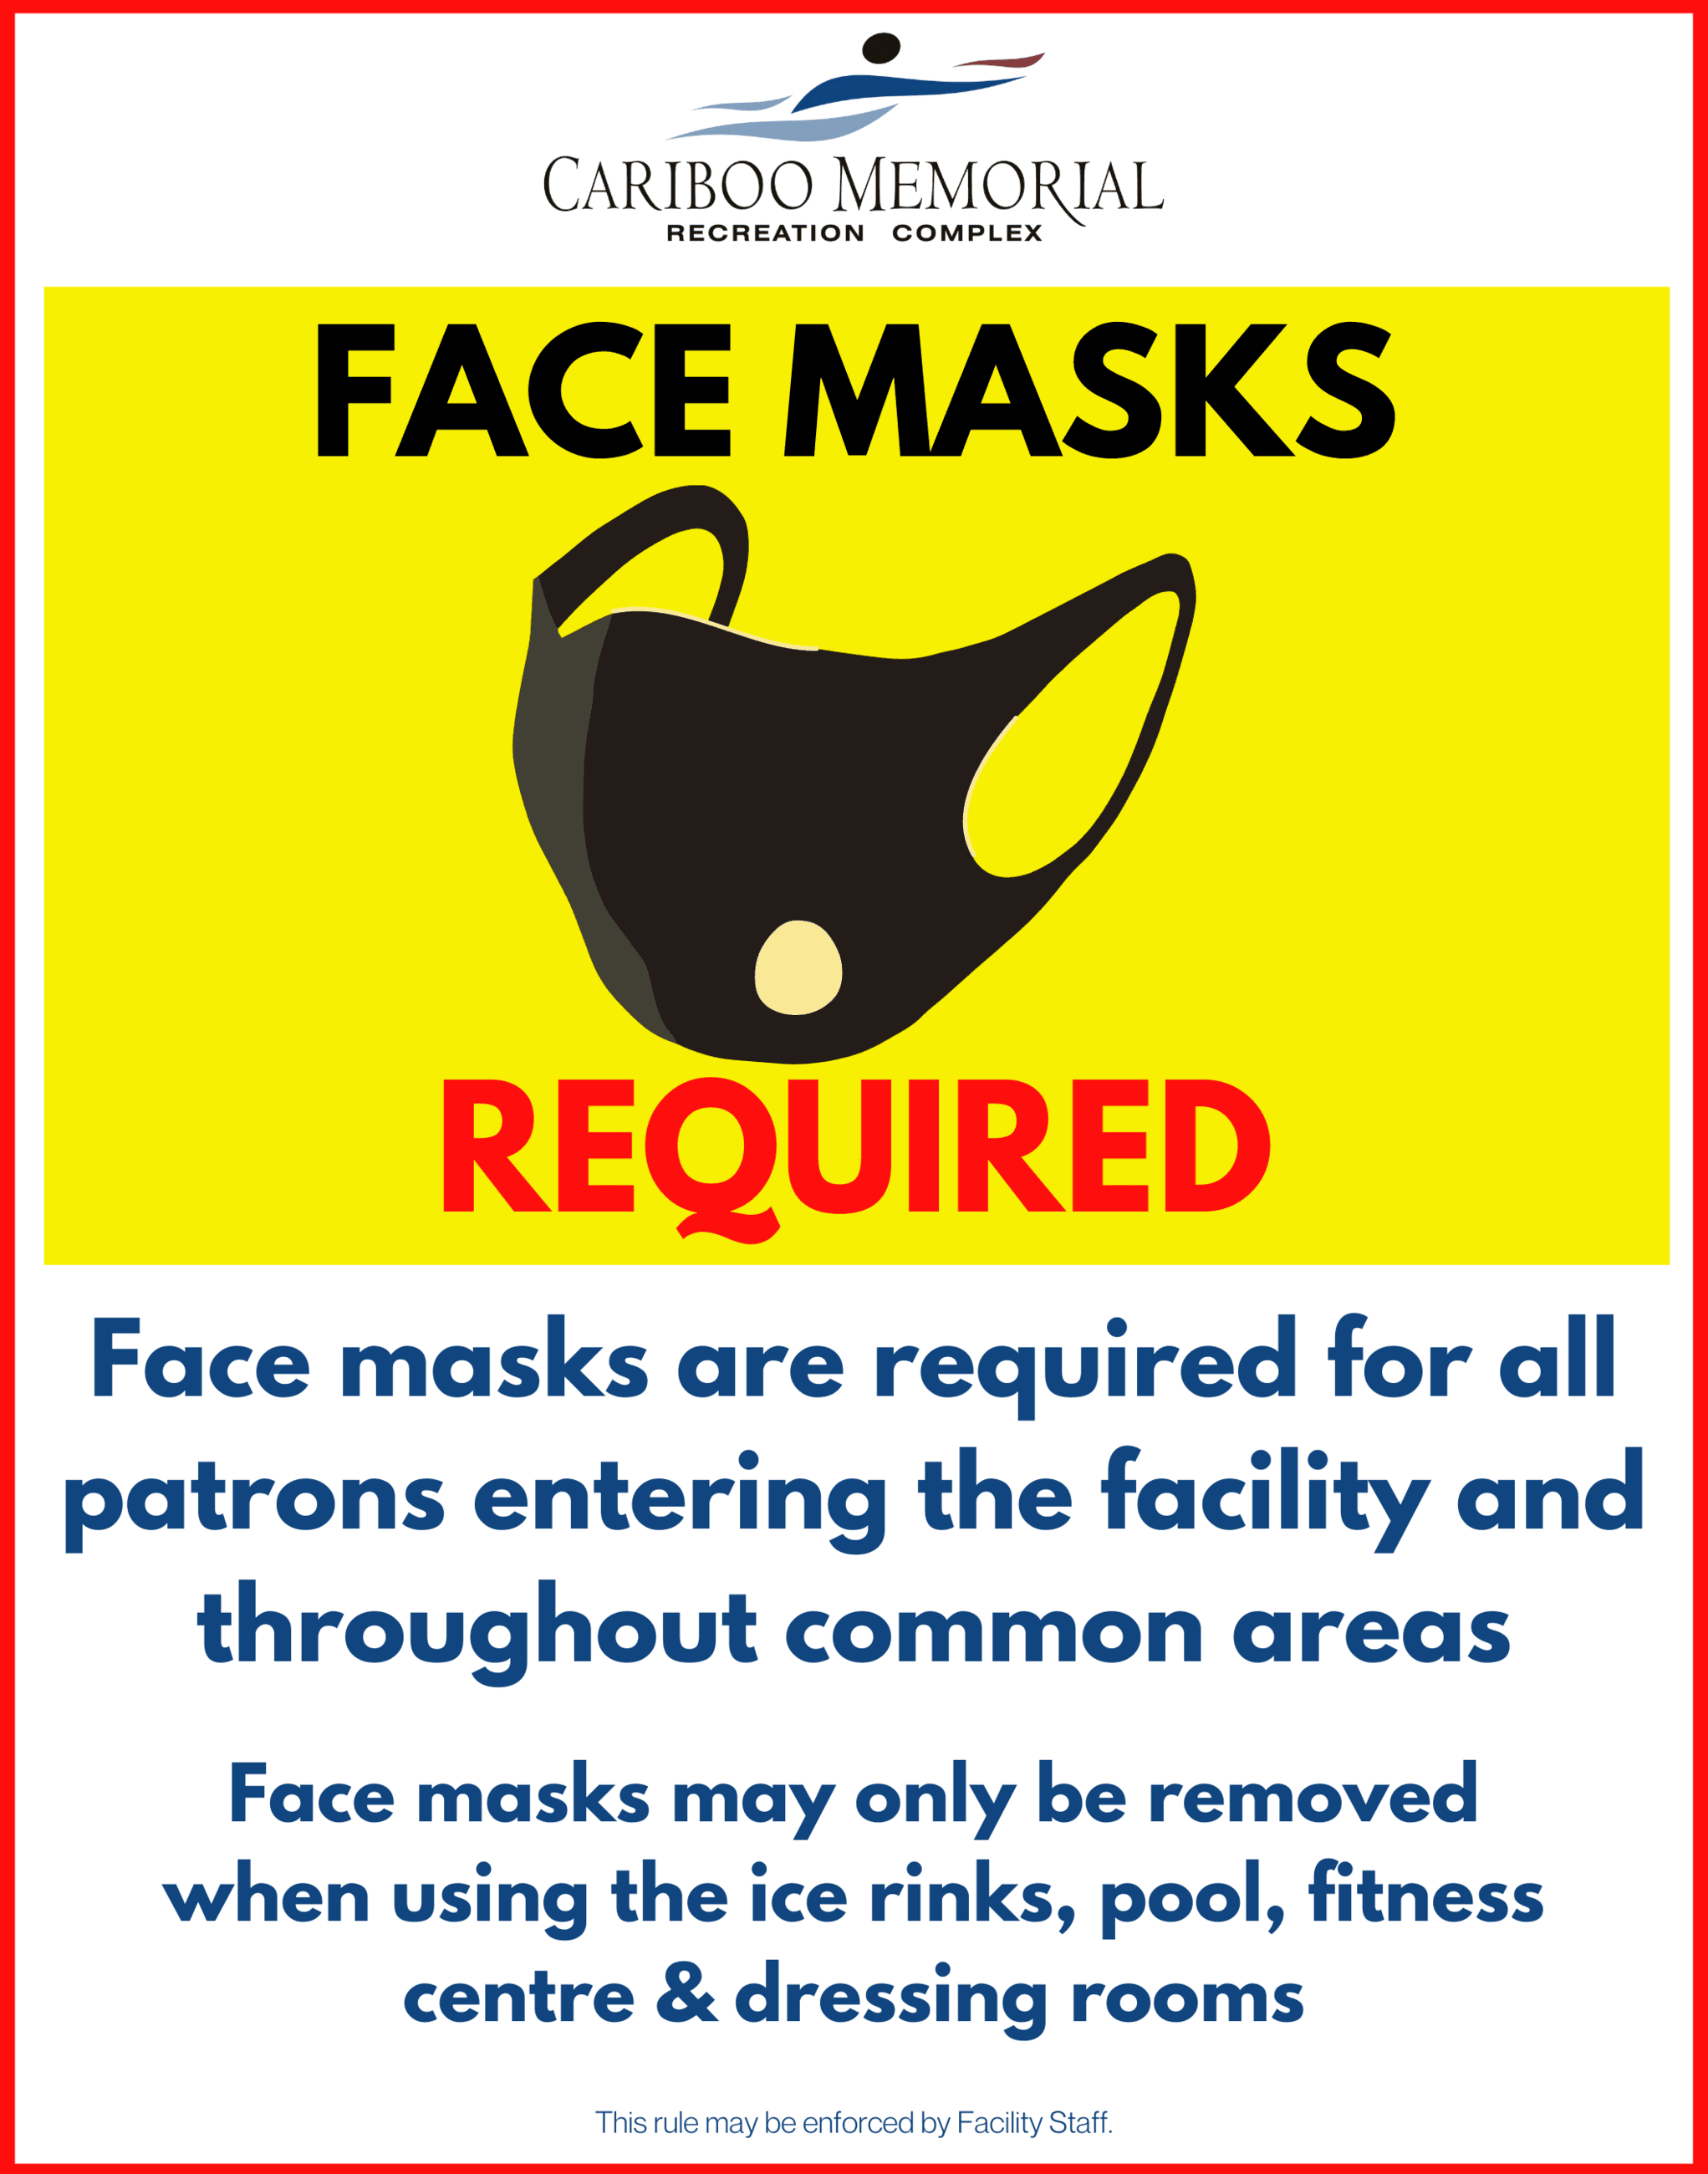 22x28 Masks Required Updated